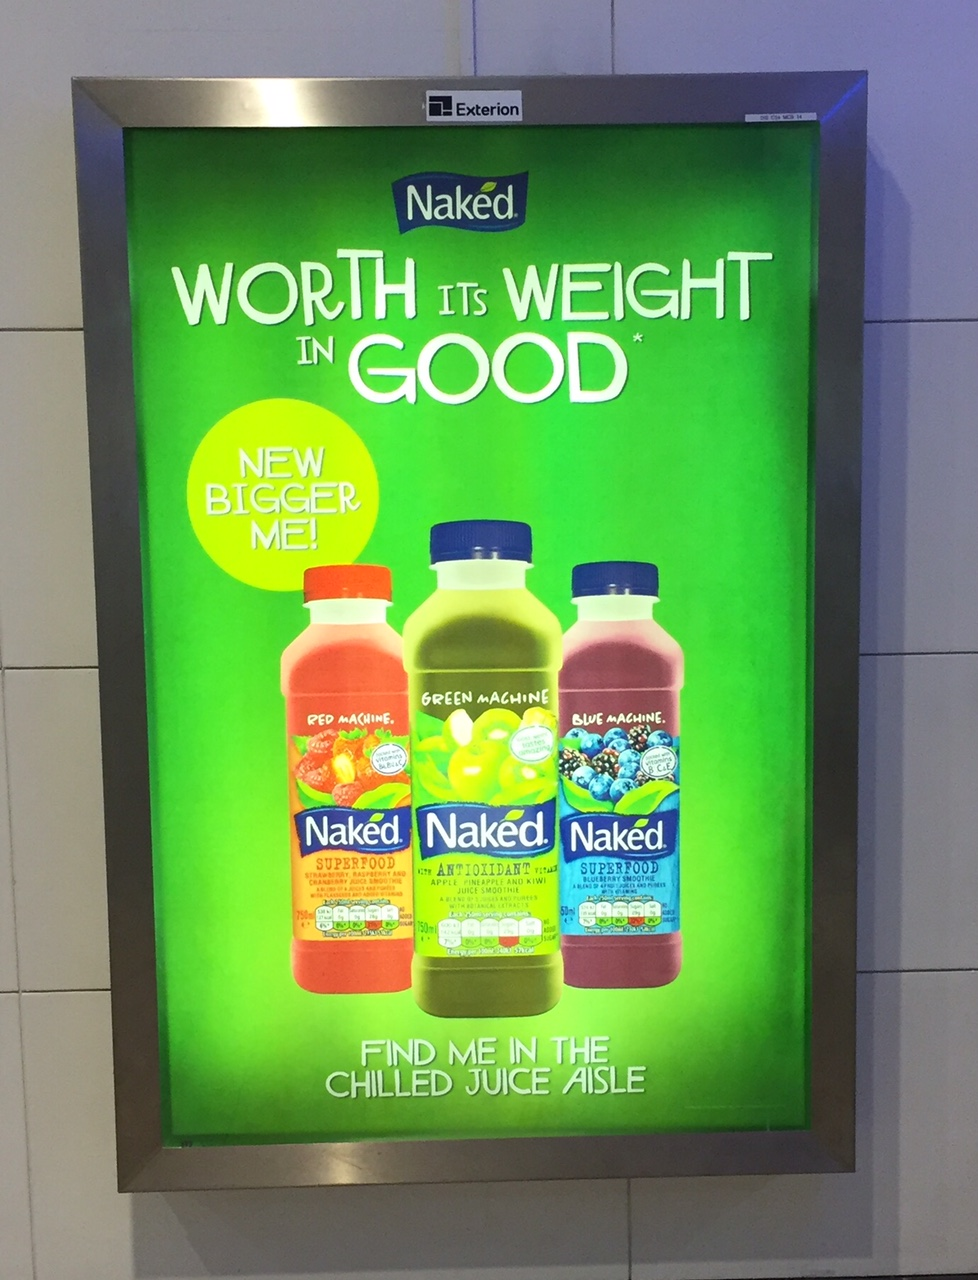 Naked – worth its weight in good